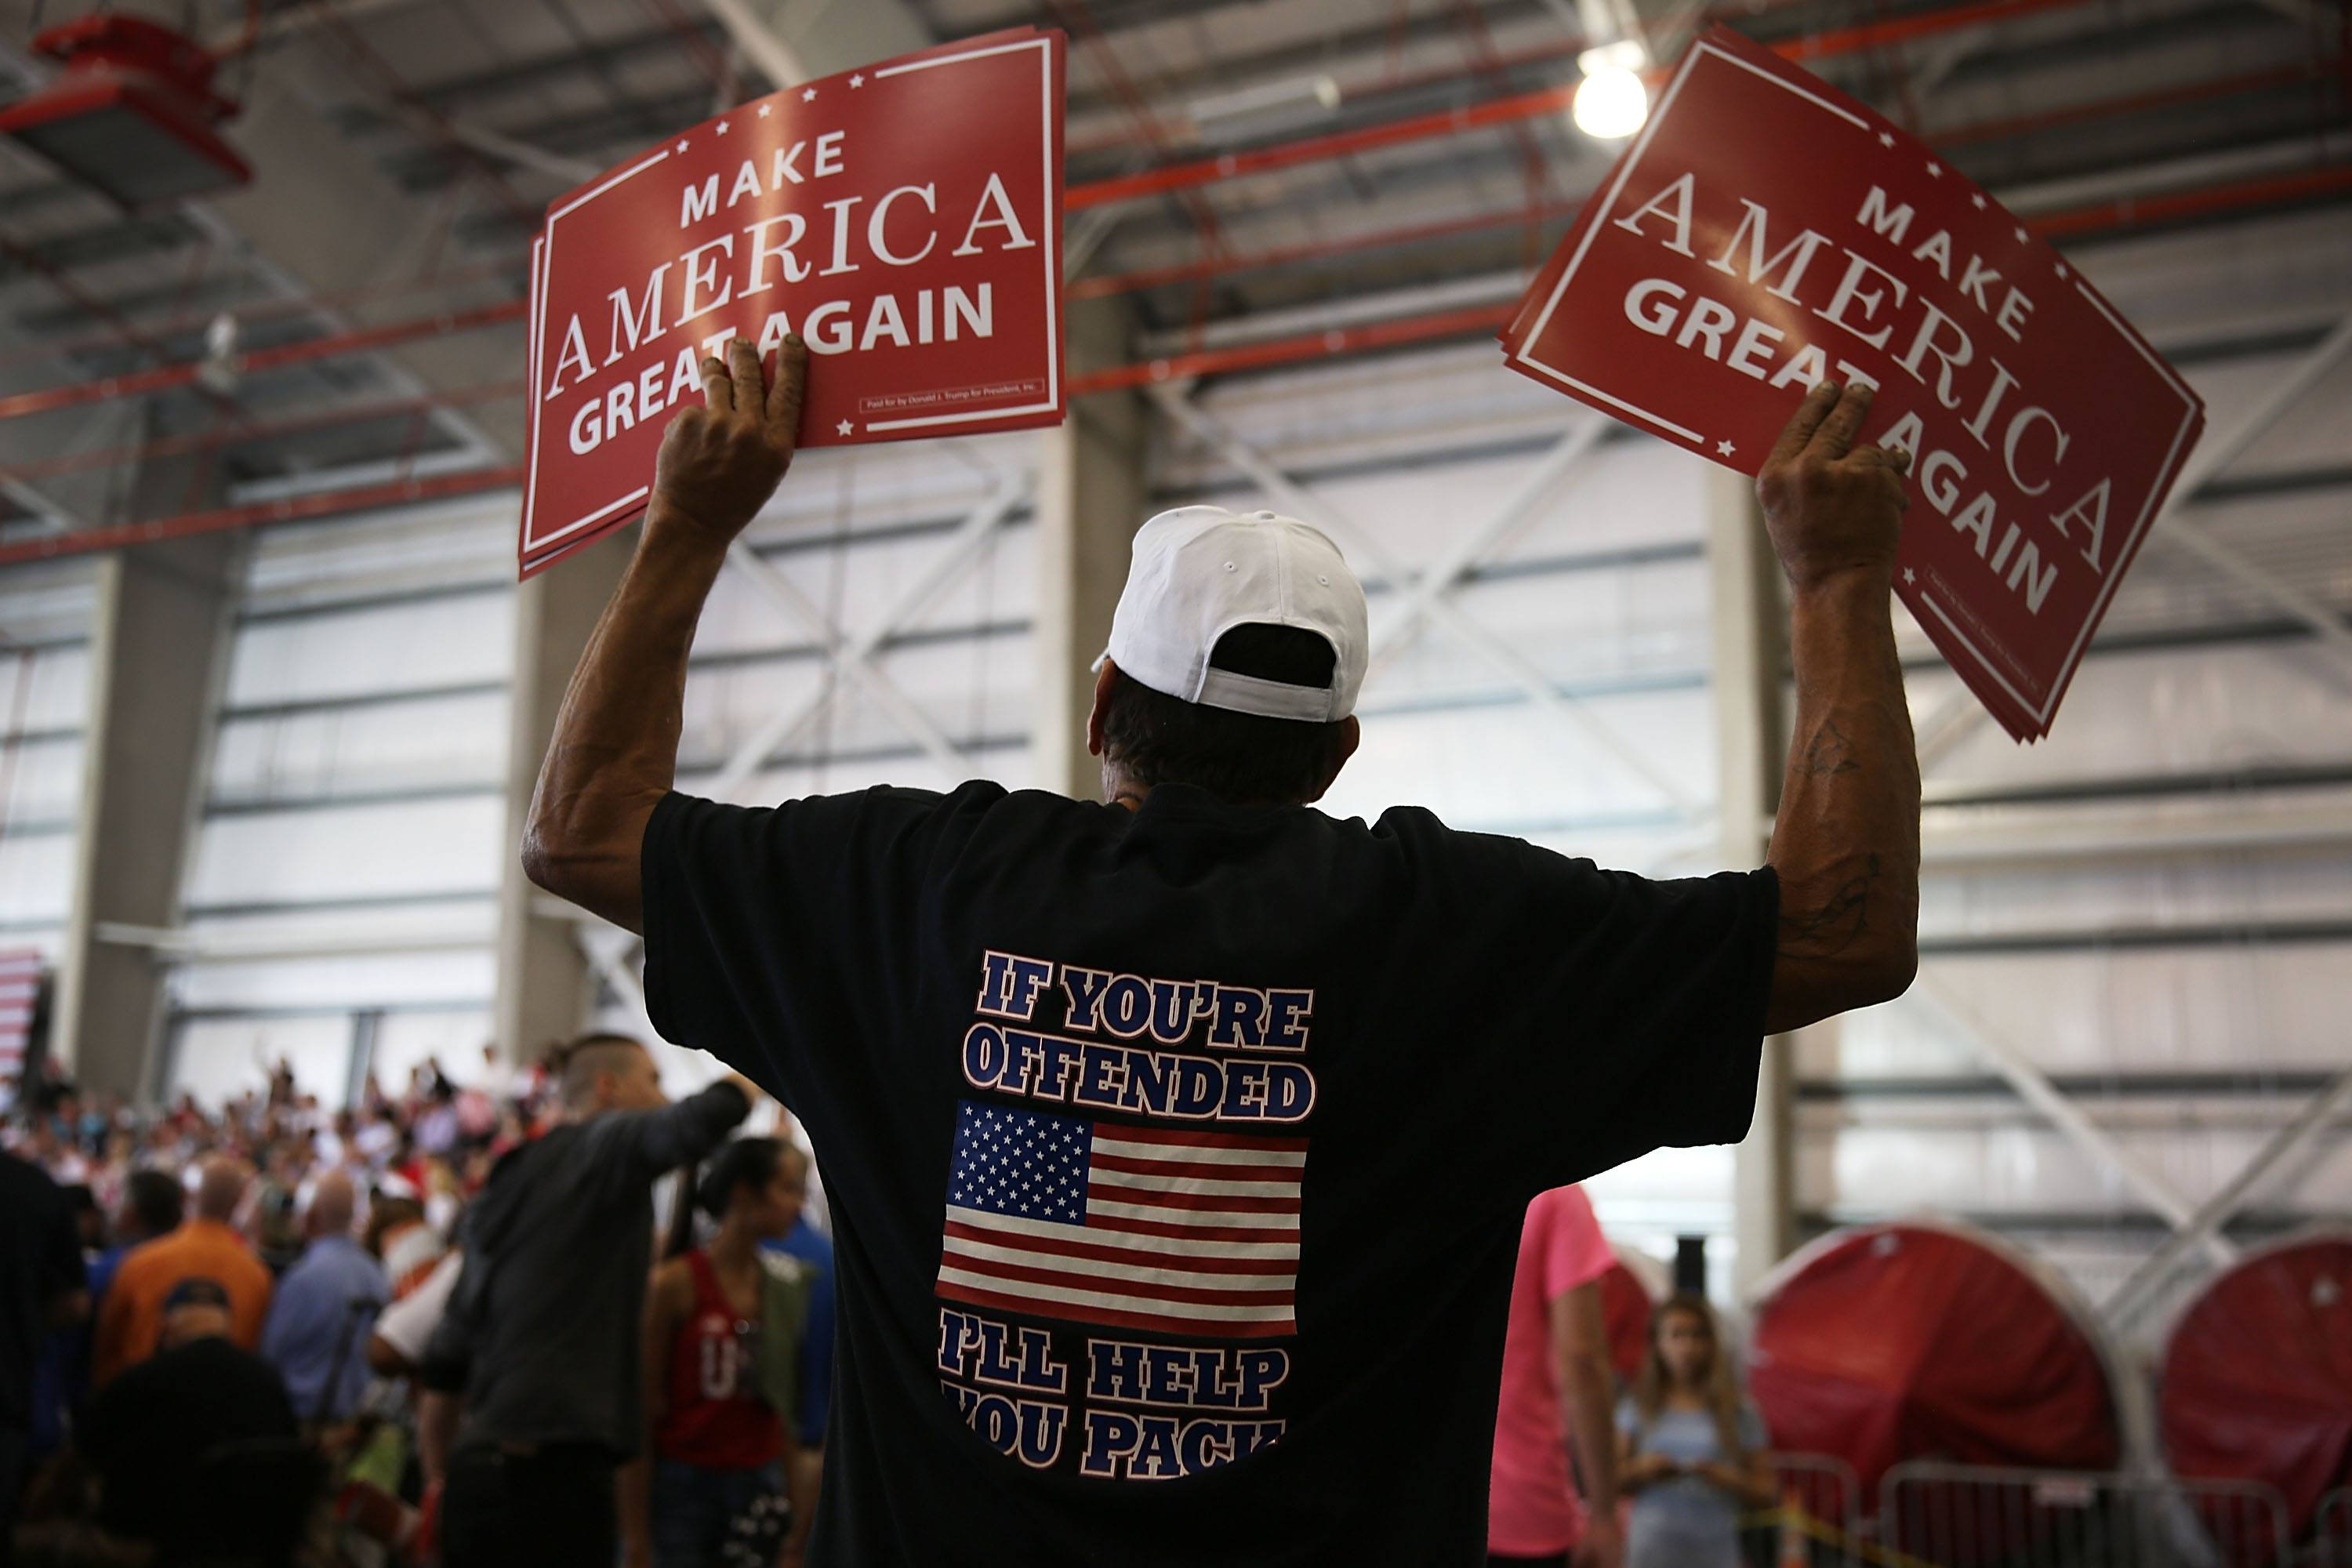 A Trump fan waits for the President at his Florida rally.